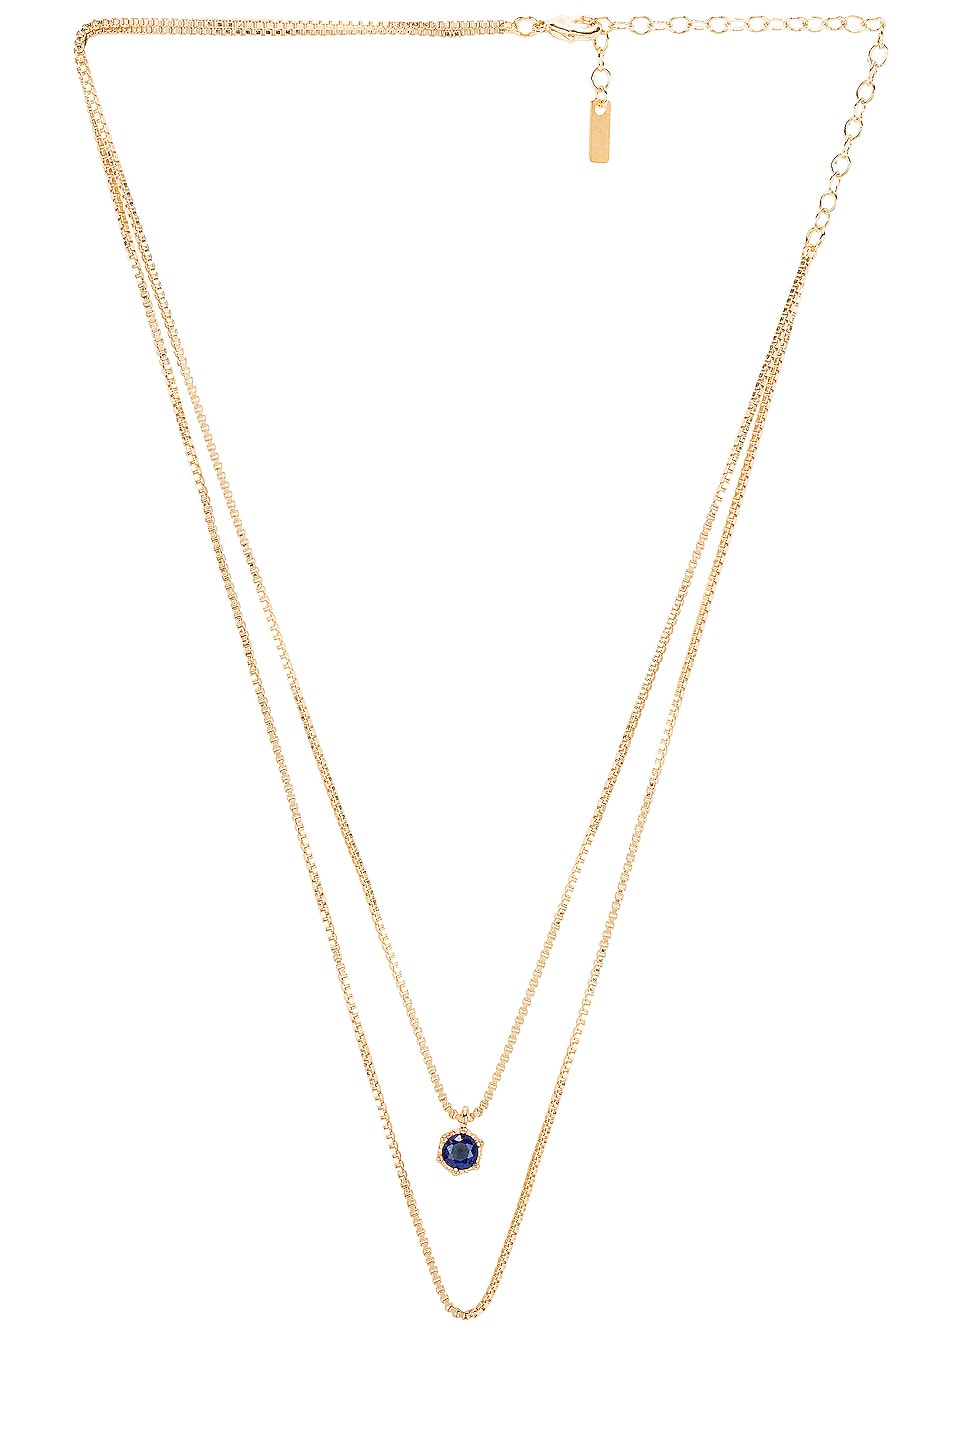 Natalie B Jewelry September Birthstone Necklace in September